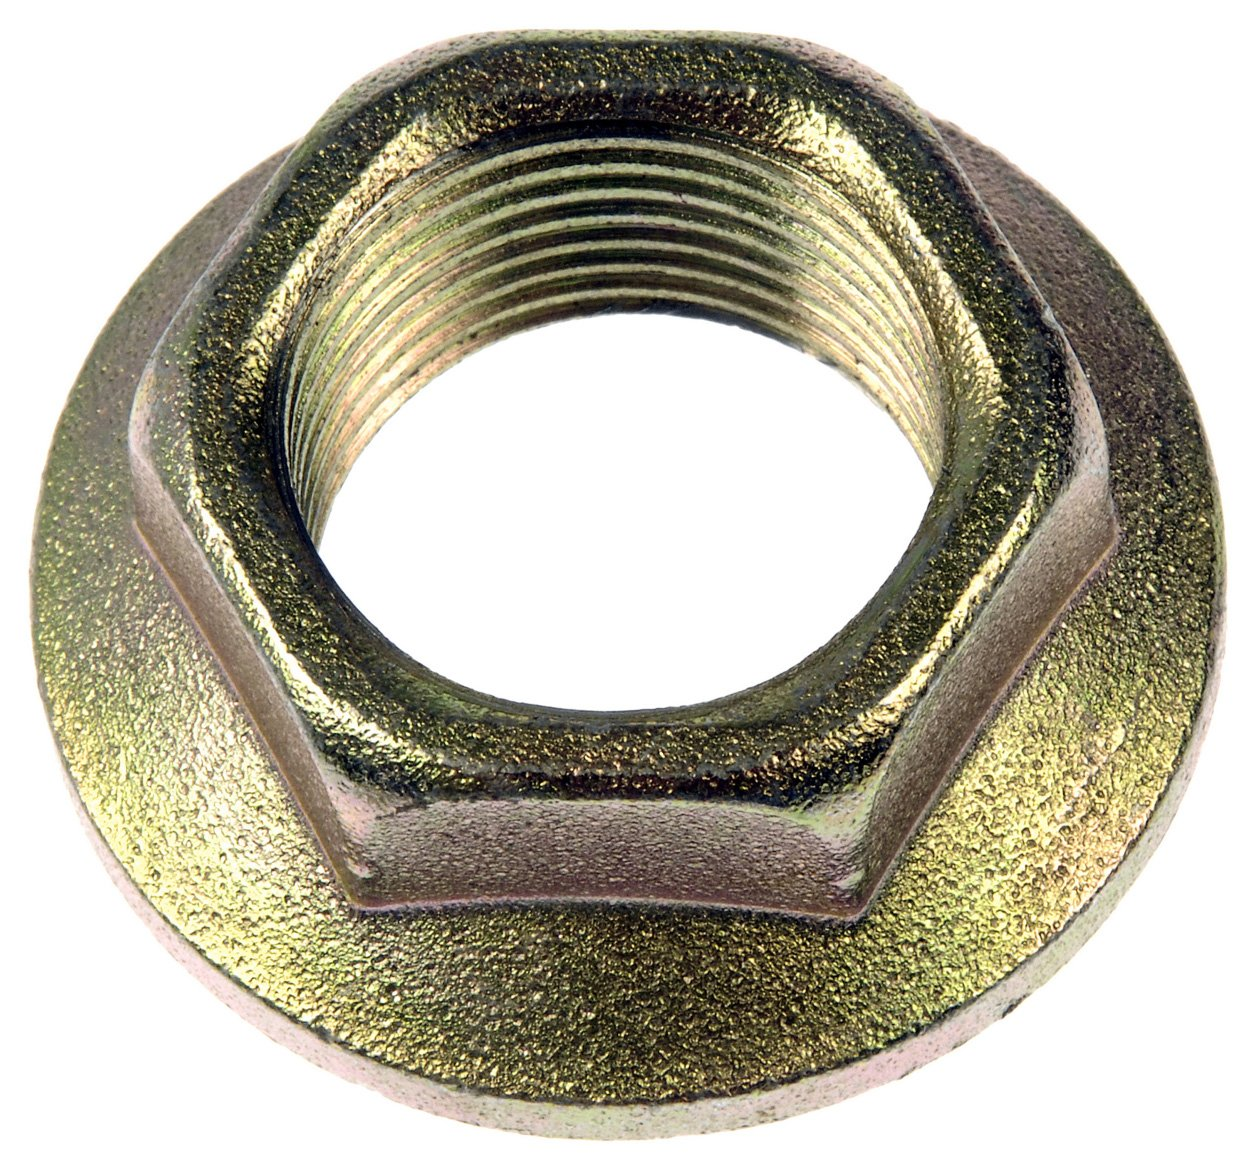 Dorman 615-144 Axle Nut Dorman - Autograde 615-144-DOR